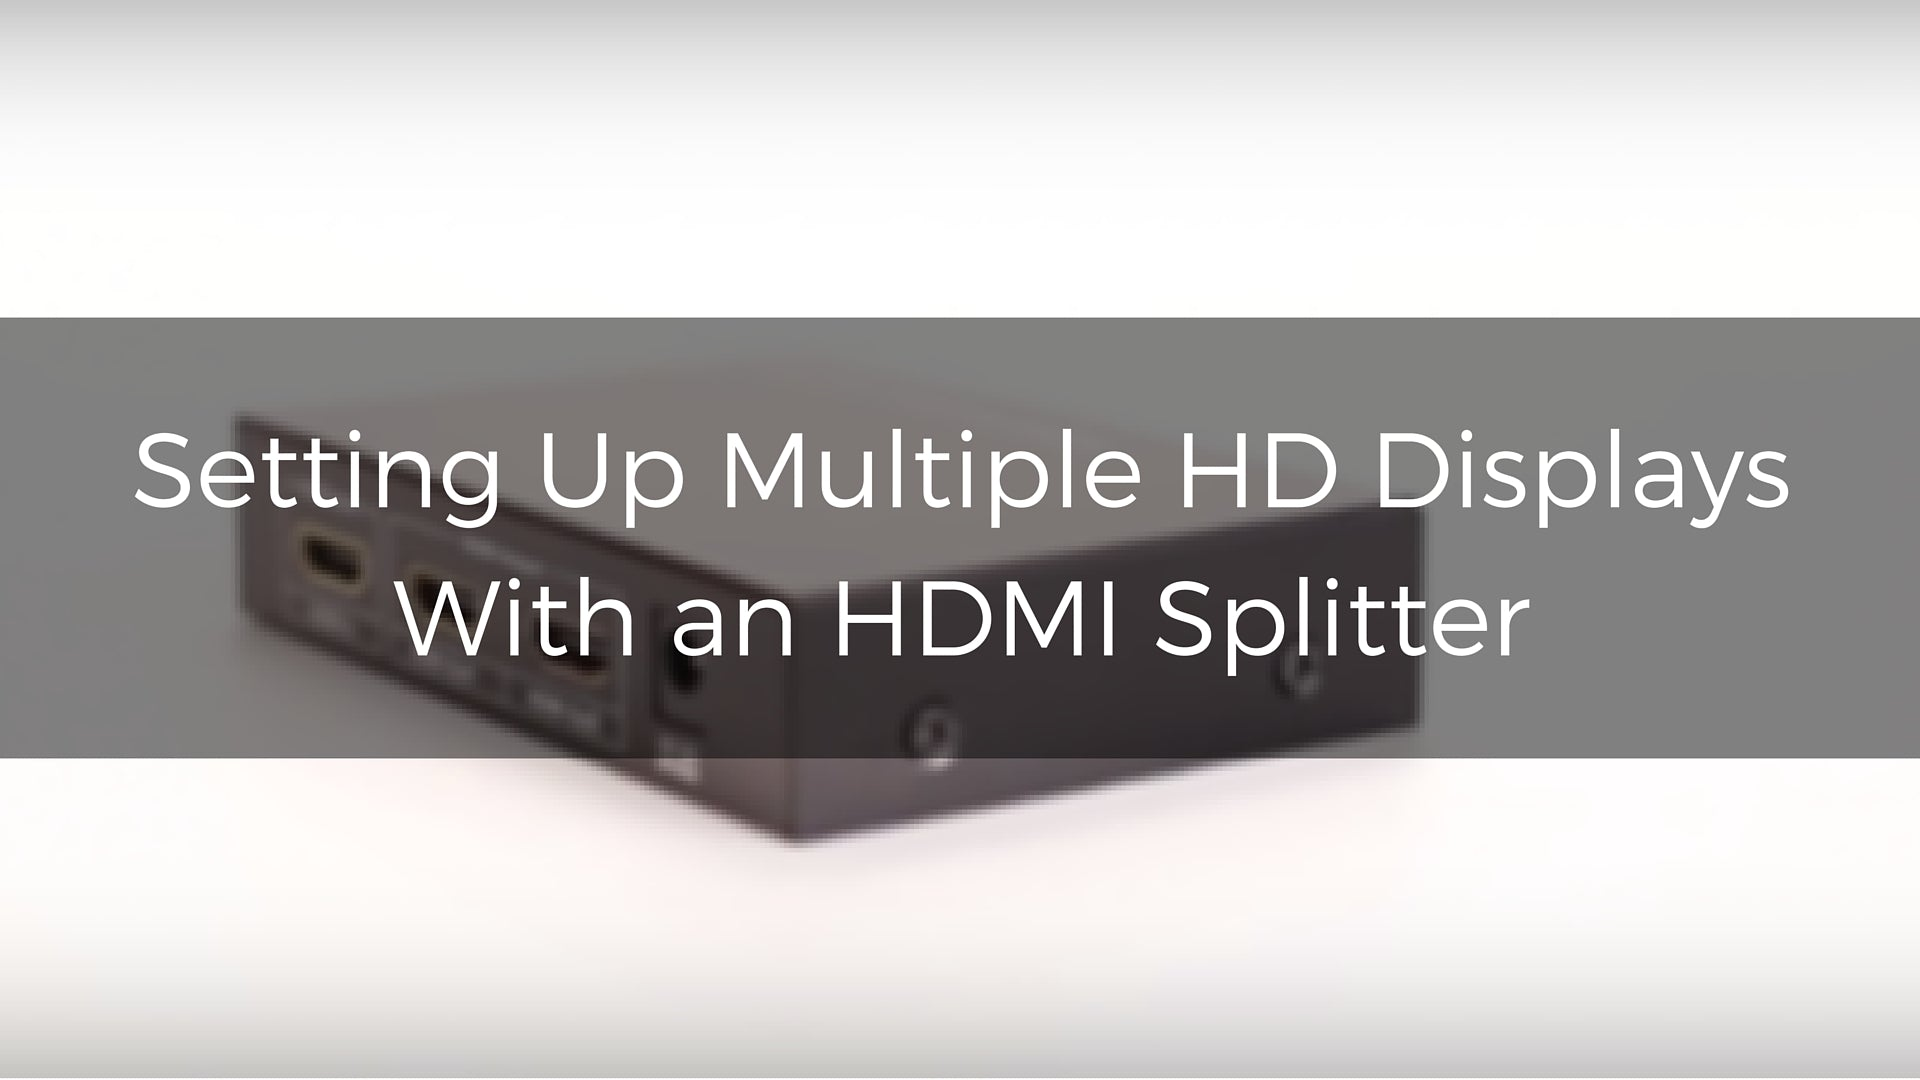 Setting Up Multiple HD Displays With an HDMI Splitter